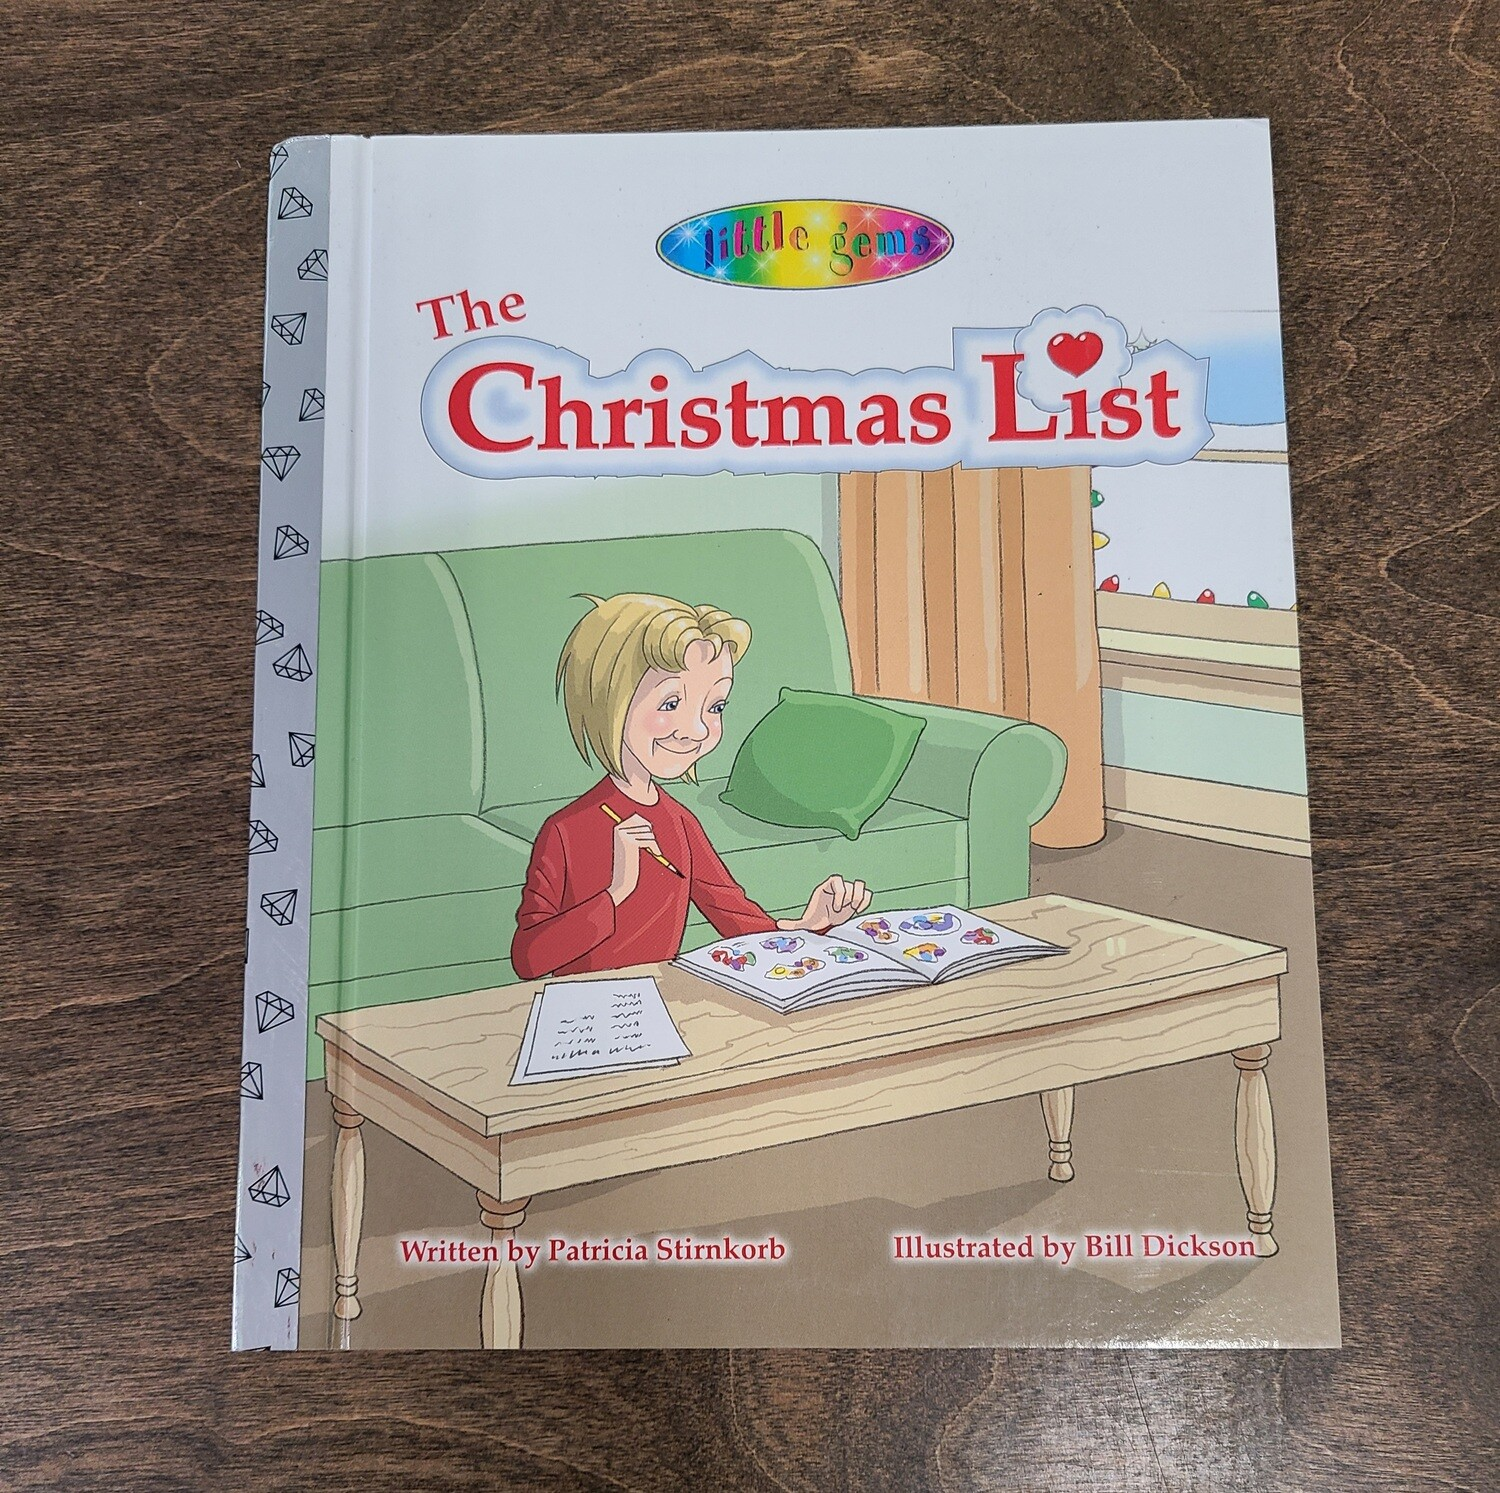 The Christmas List by Patricia Stirnkorb and Bill Dickson